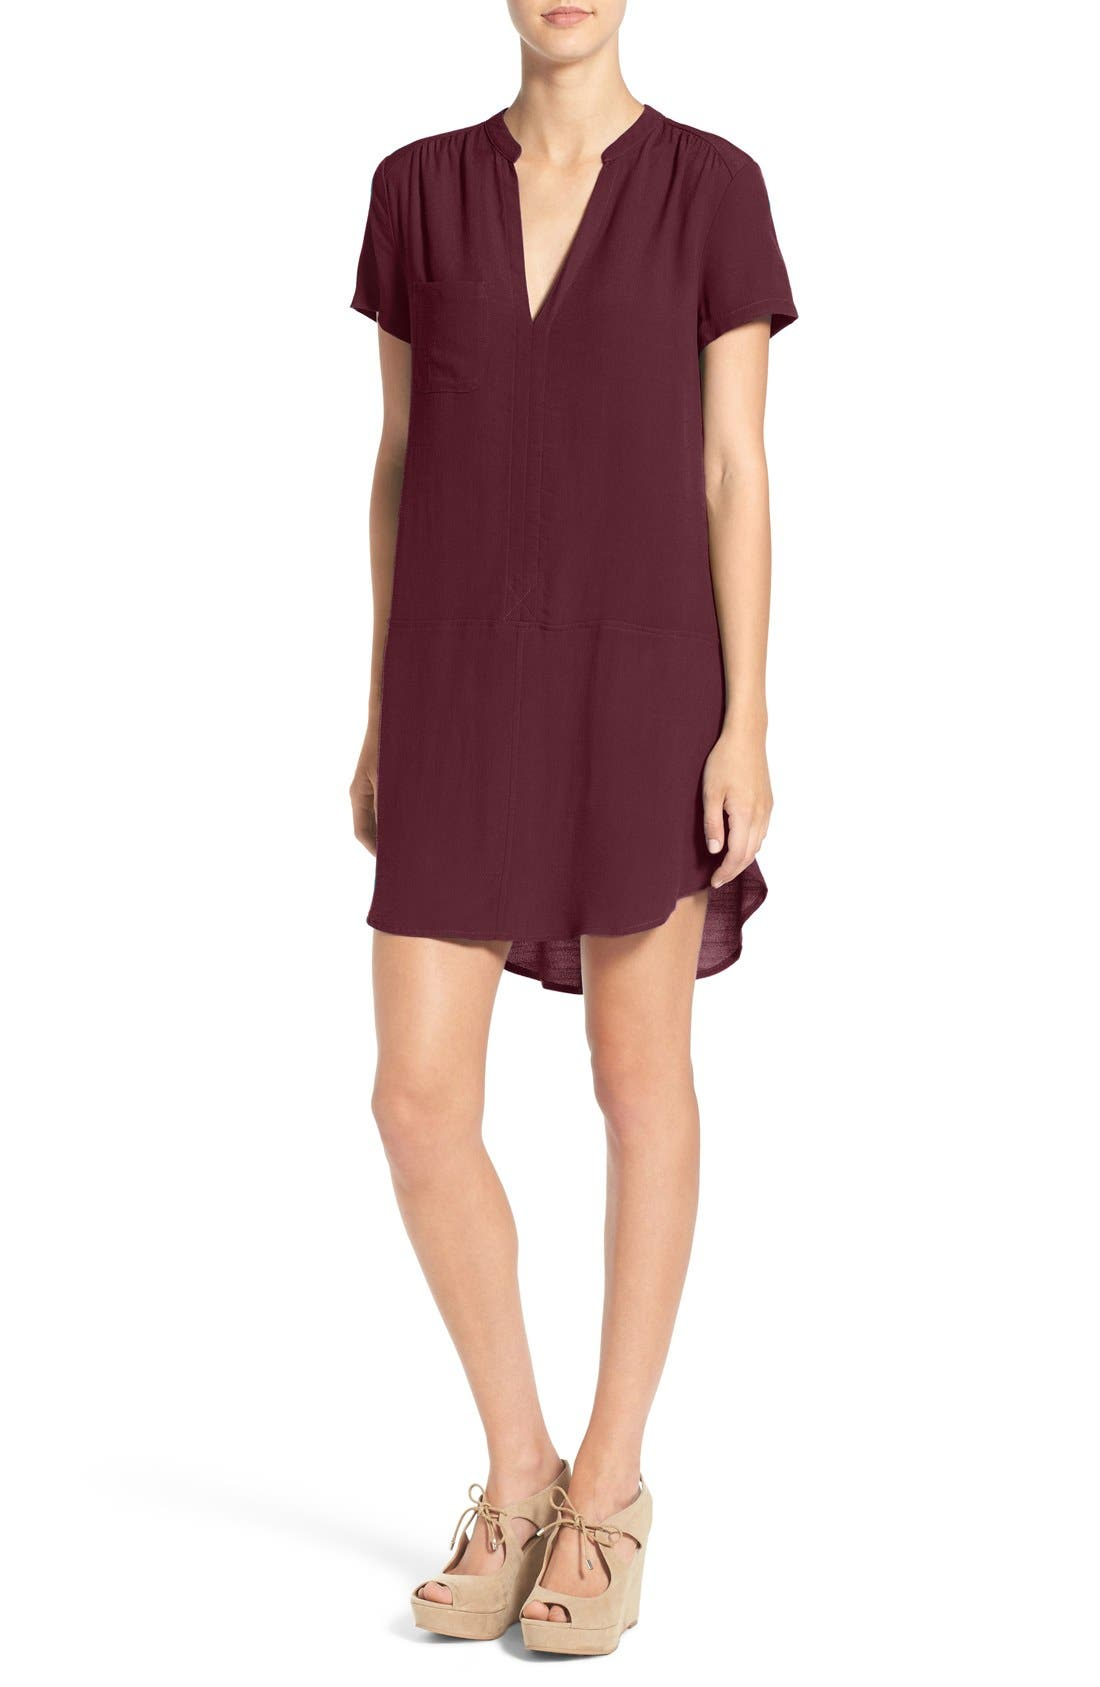 Alternate Image 1 Selected - Lush Split Neck Shift Dress